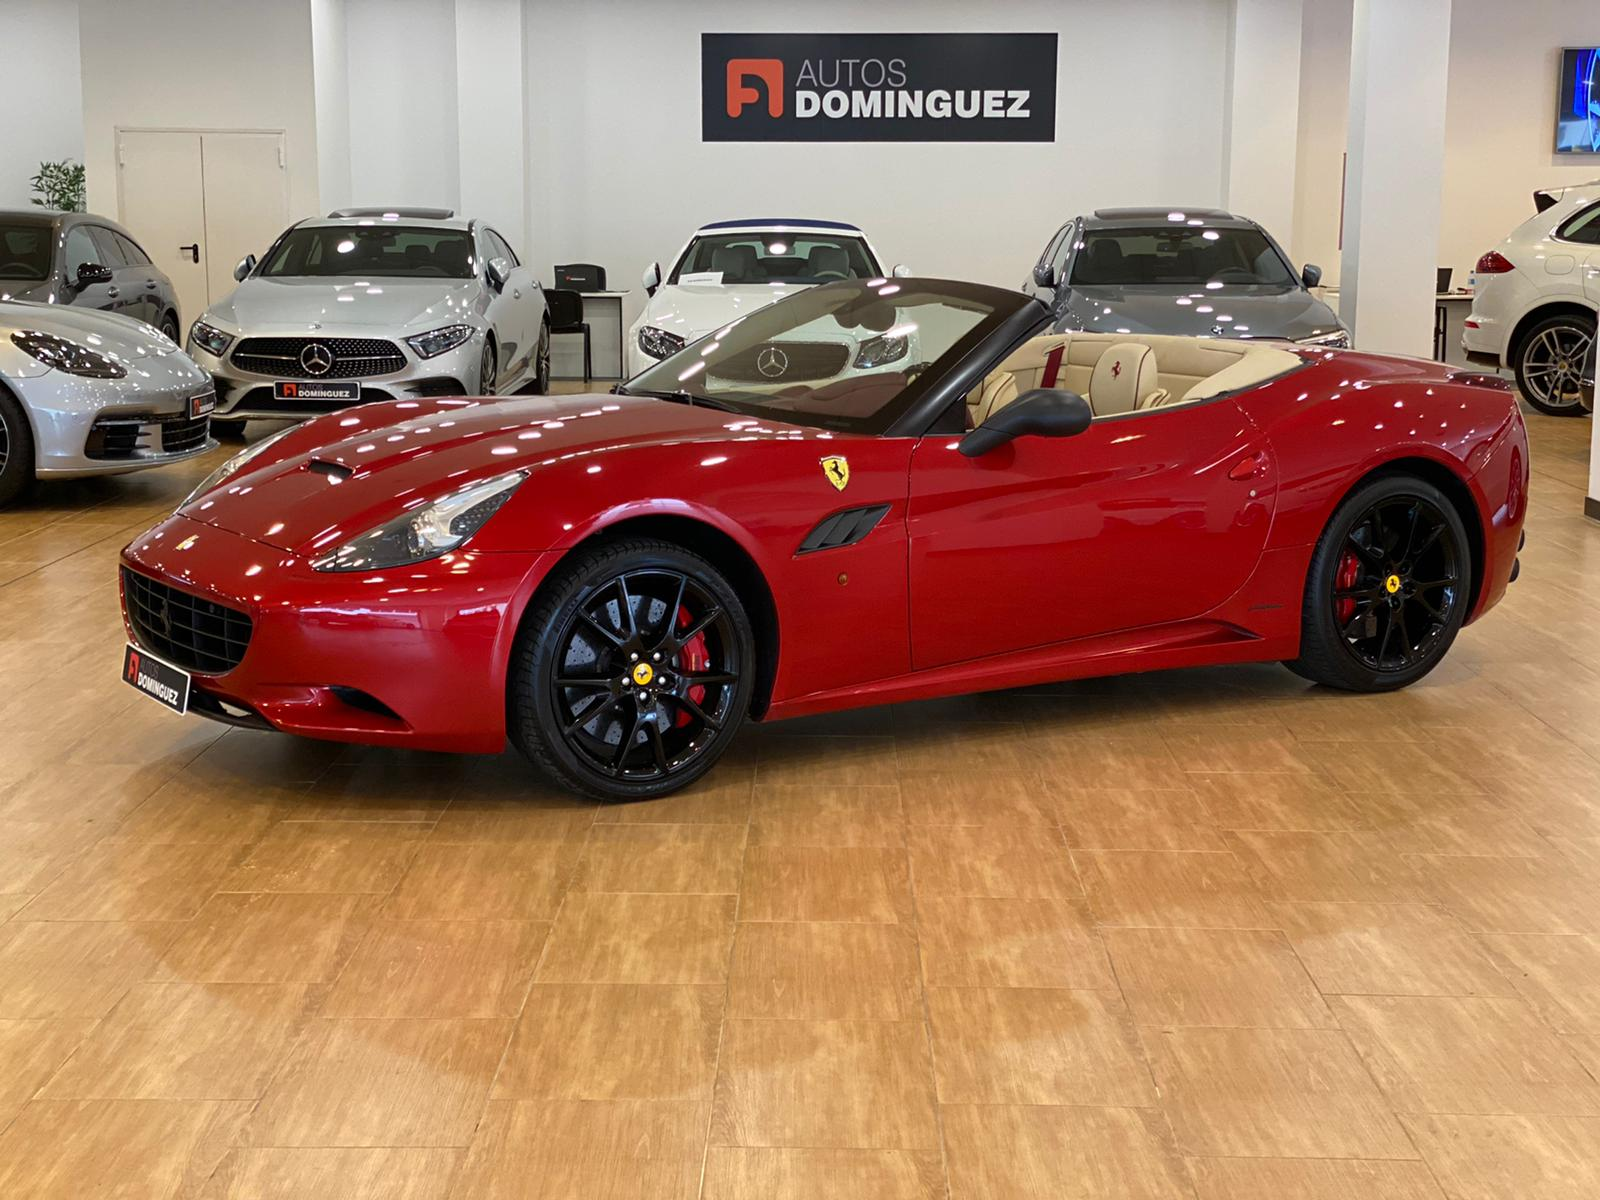 FERRARI CALIFORNIA TAILOR MADE 4 PLAZAS 460 CV 1